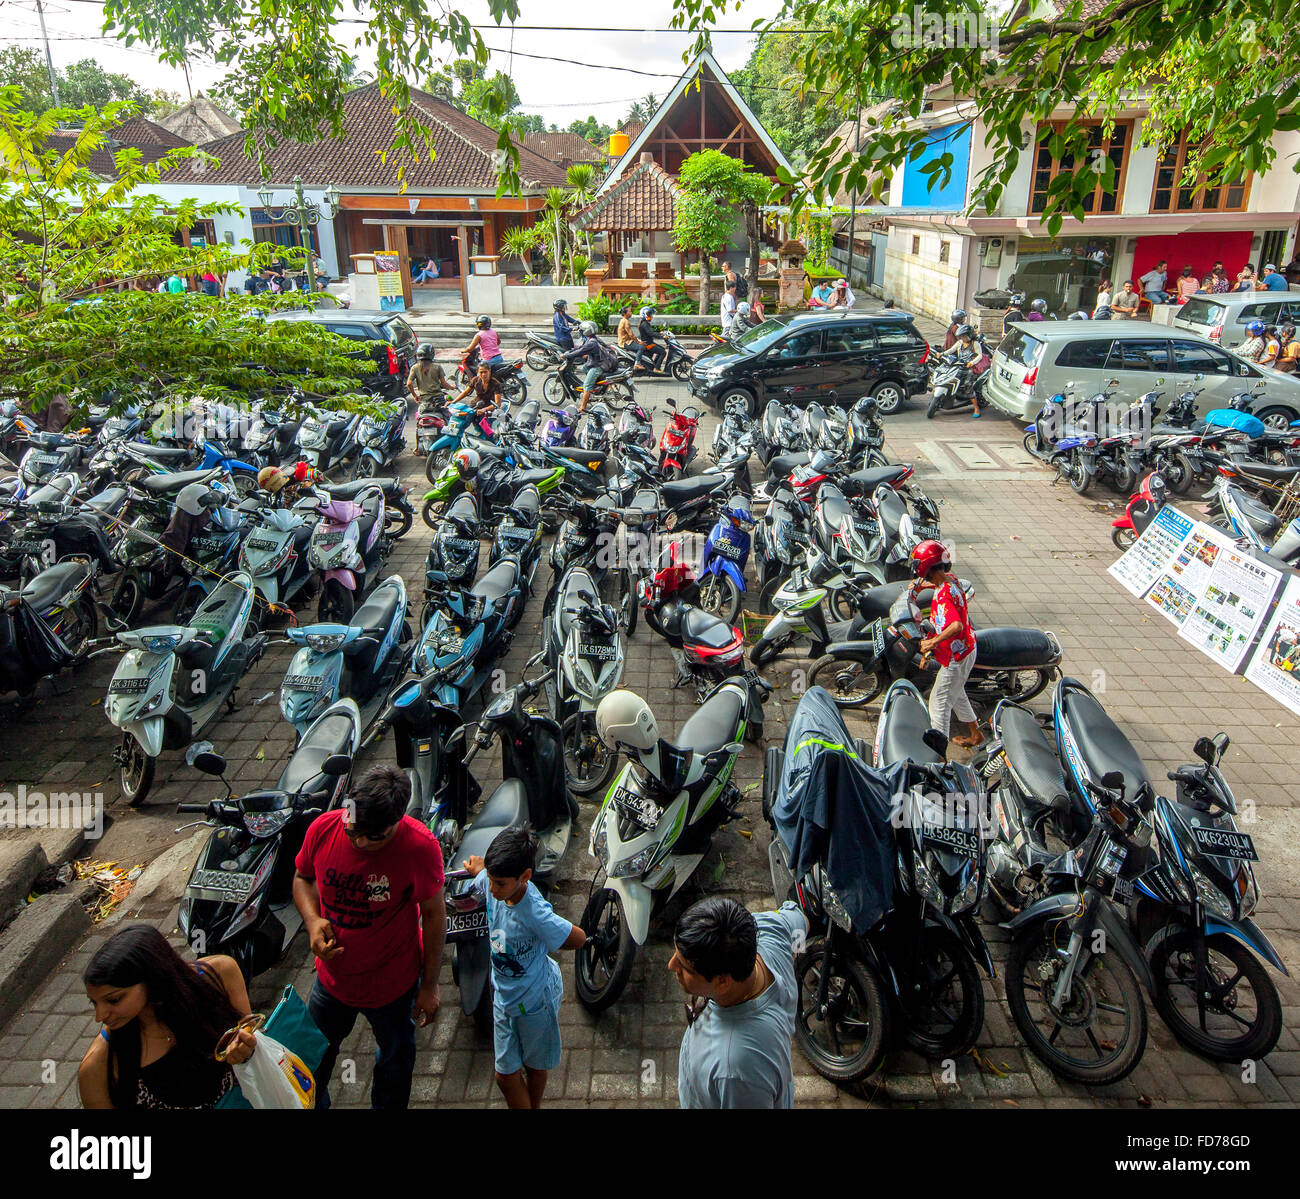 Motorcycle parking, motorcycles, street scene, scooter in a parking lot for rent in Ubud, Ubud, Bali, Indonesia, - Stock Image